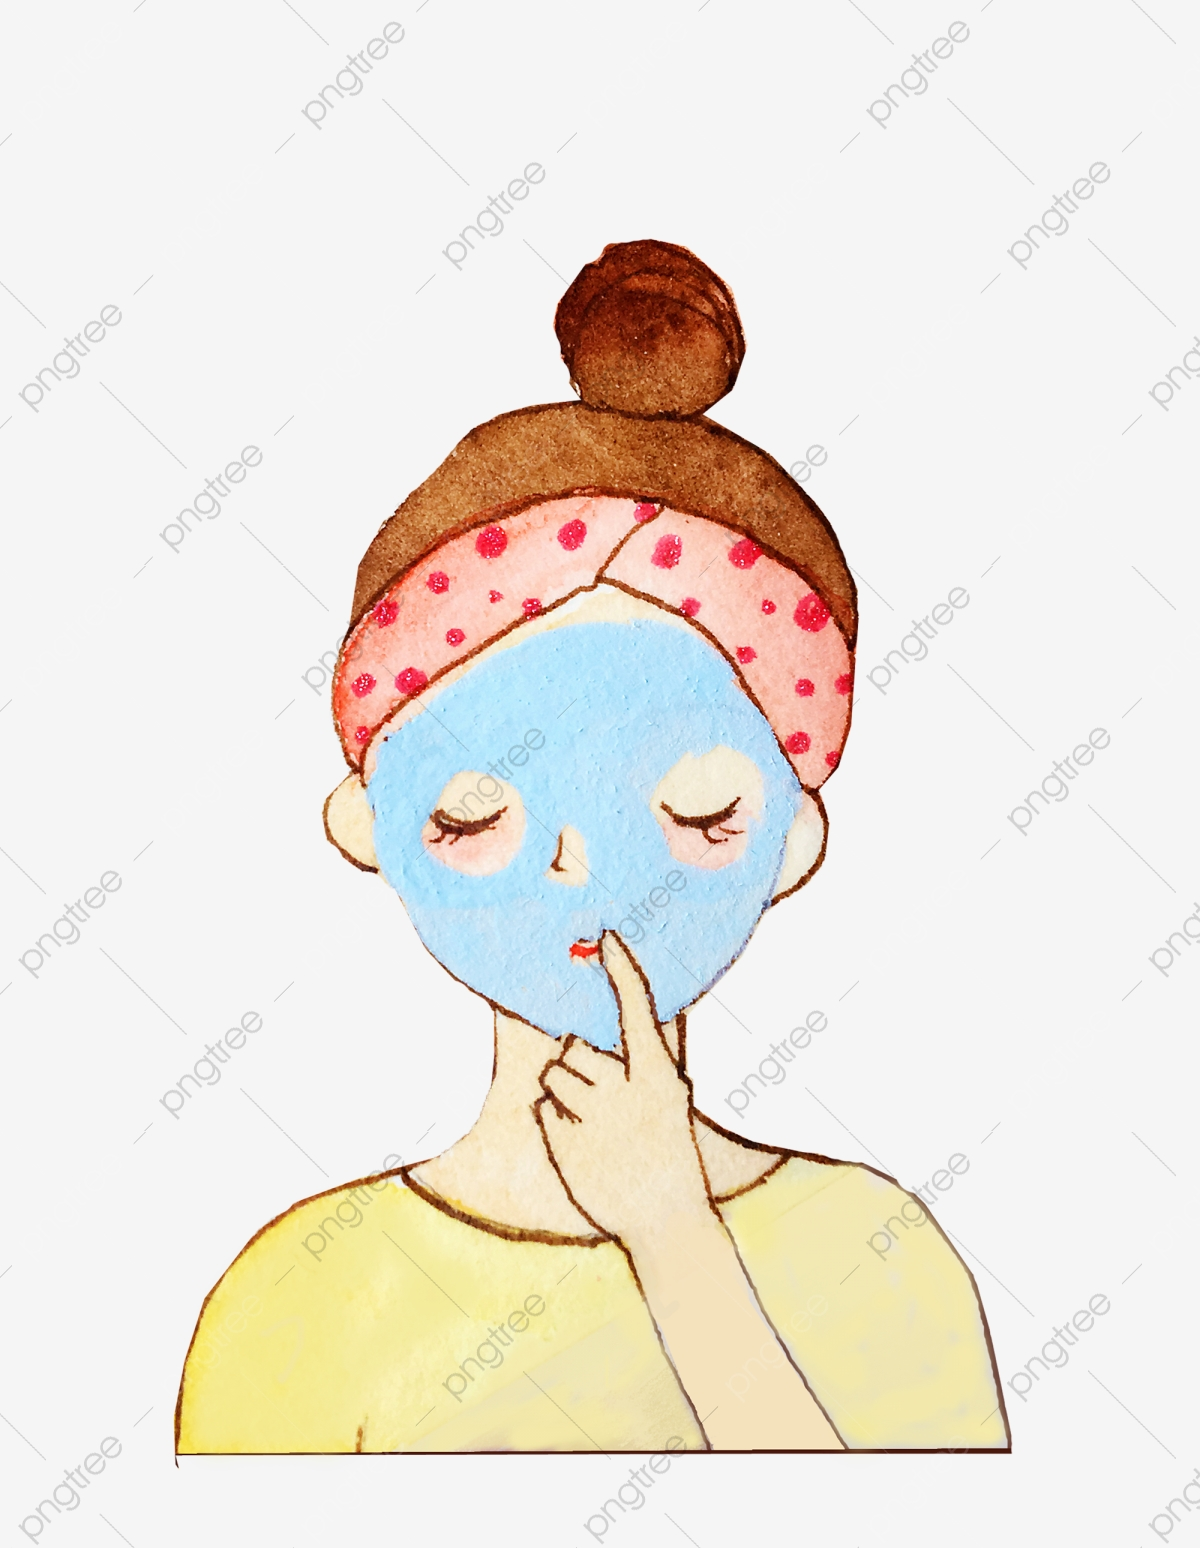 Skincare Model Beauty Cosmetology Skin Care Png Transparent Clipart Image And Psd File For Free Download